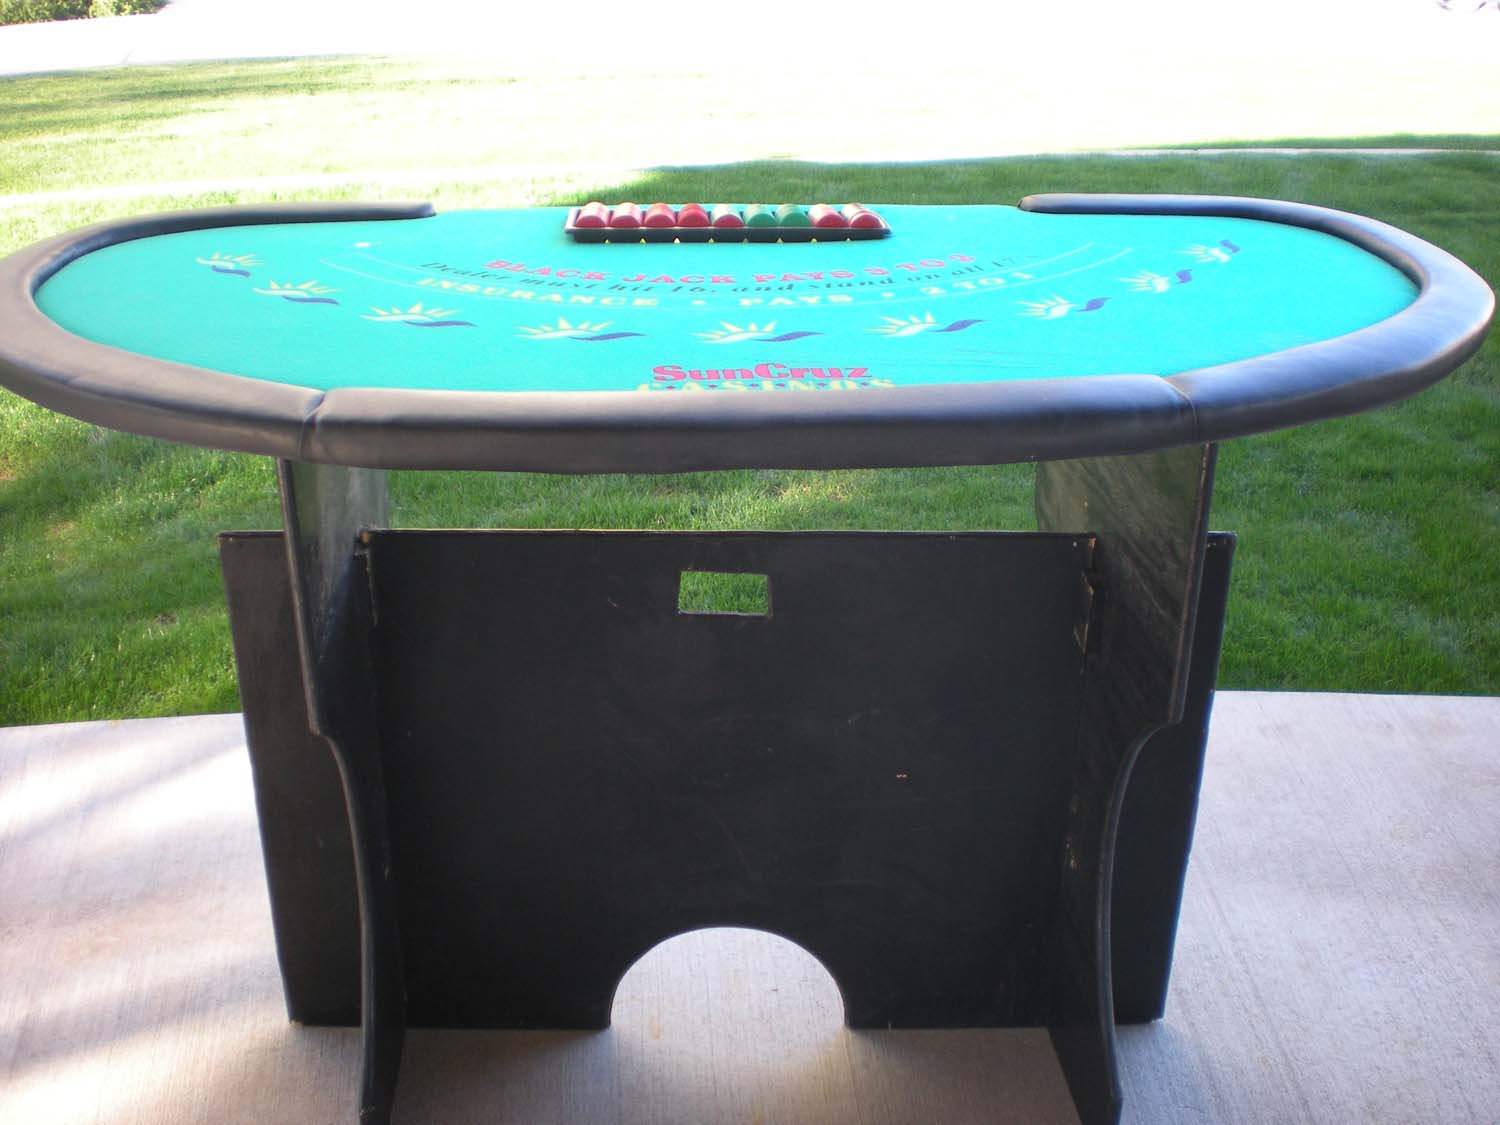 Blackjack is one of the most popular casino party games for casino night events in Tucson, AZ